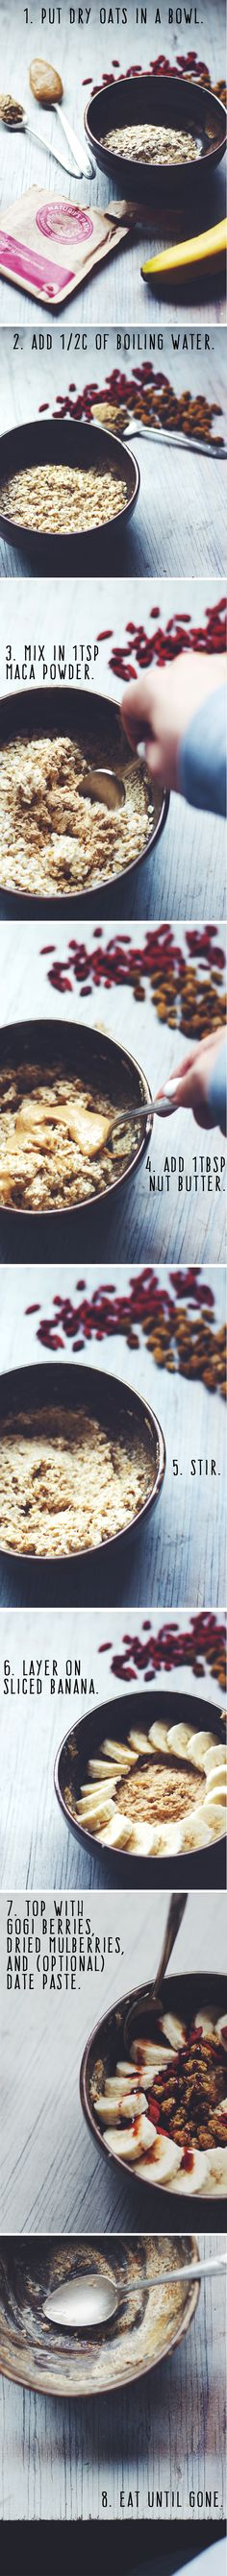 SUPER Superfood Oats ||| Brewing Happiness